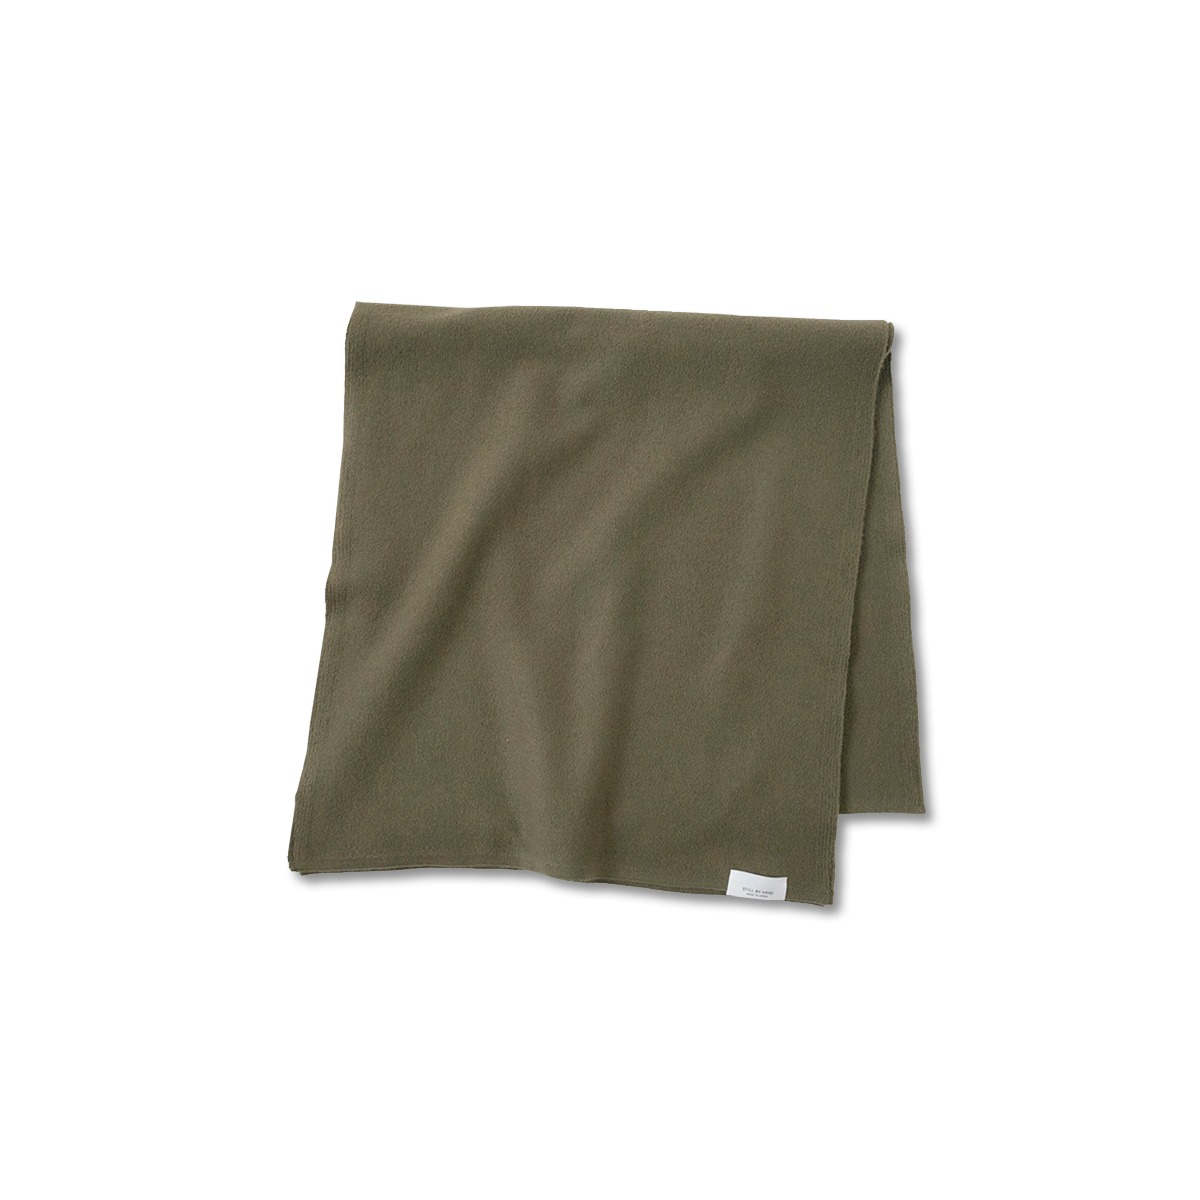 [STILL BY HAND] GD02203OS - WOOL KNIT STOLE 'OLIVE'